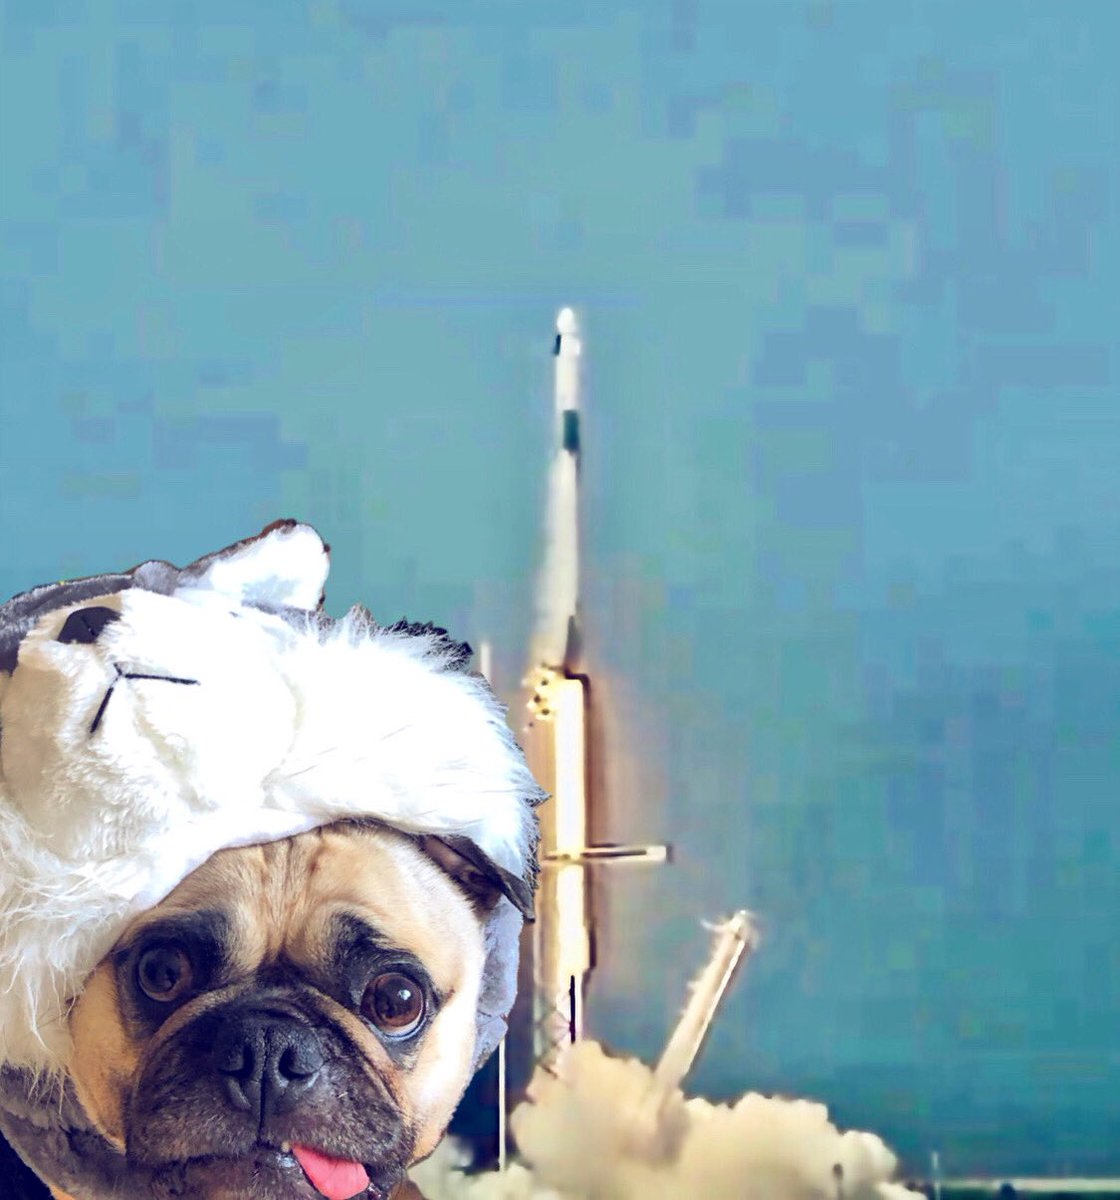 """When I grows up I wants to bee da astronaut!"" -Max  #max #pug #dog #astronaut #space #spacex #tothemoonandback #fly #rocket #spacestation #launch #zen #elonmusk #nasa #capecanaveral #kennedyspacecenter #spacecoast #doglover #puglover #hugs #kisses #loveyoutothemoonandback pic.twitter.com/QC8mPxW0xB"